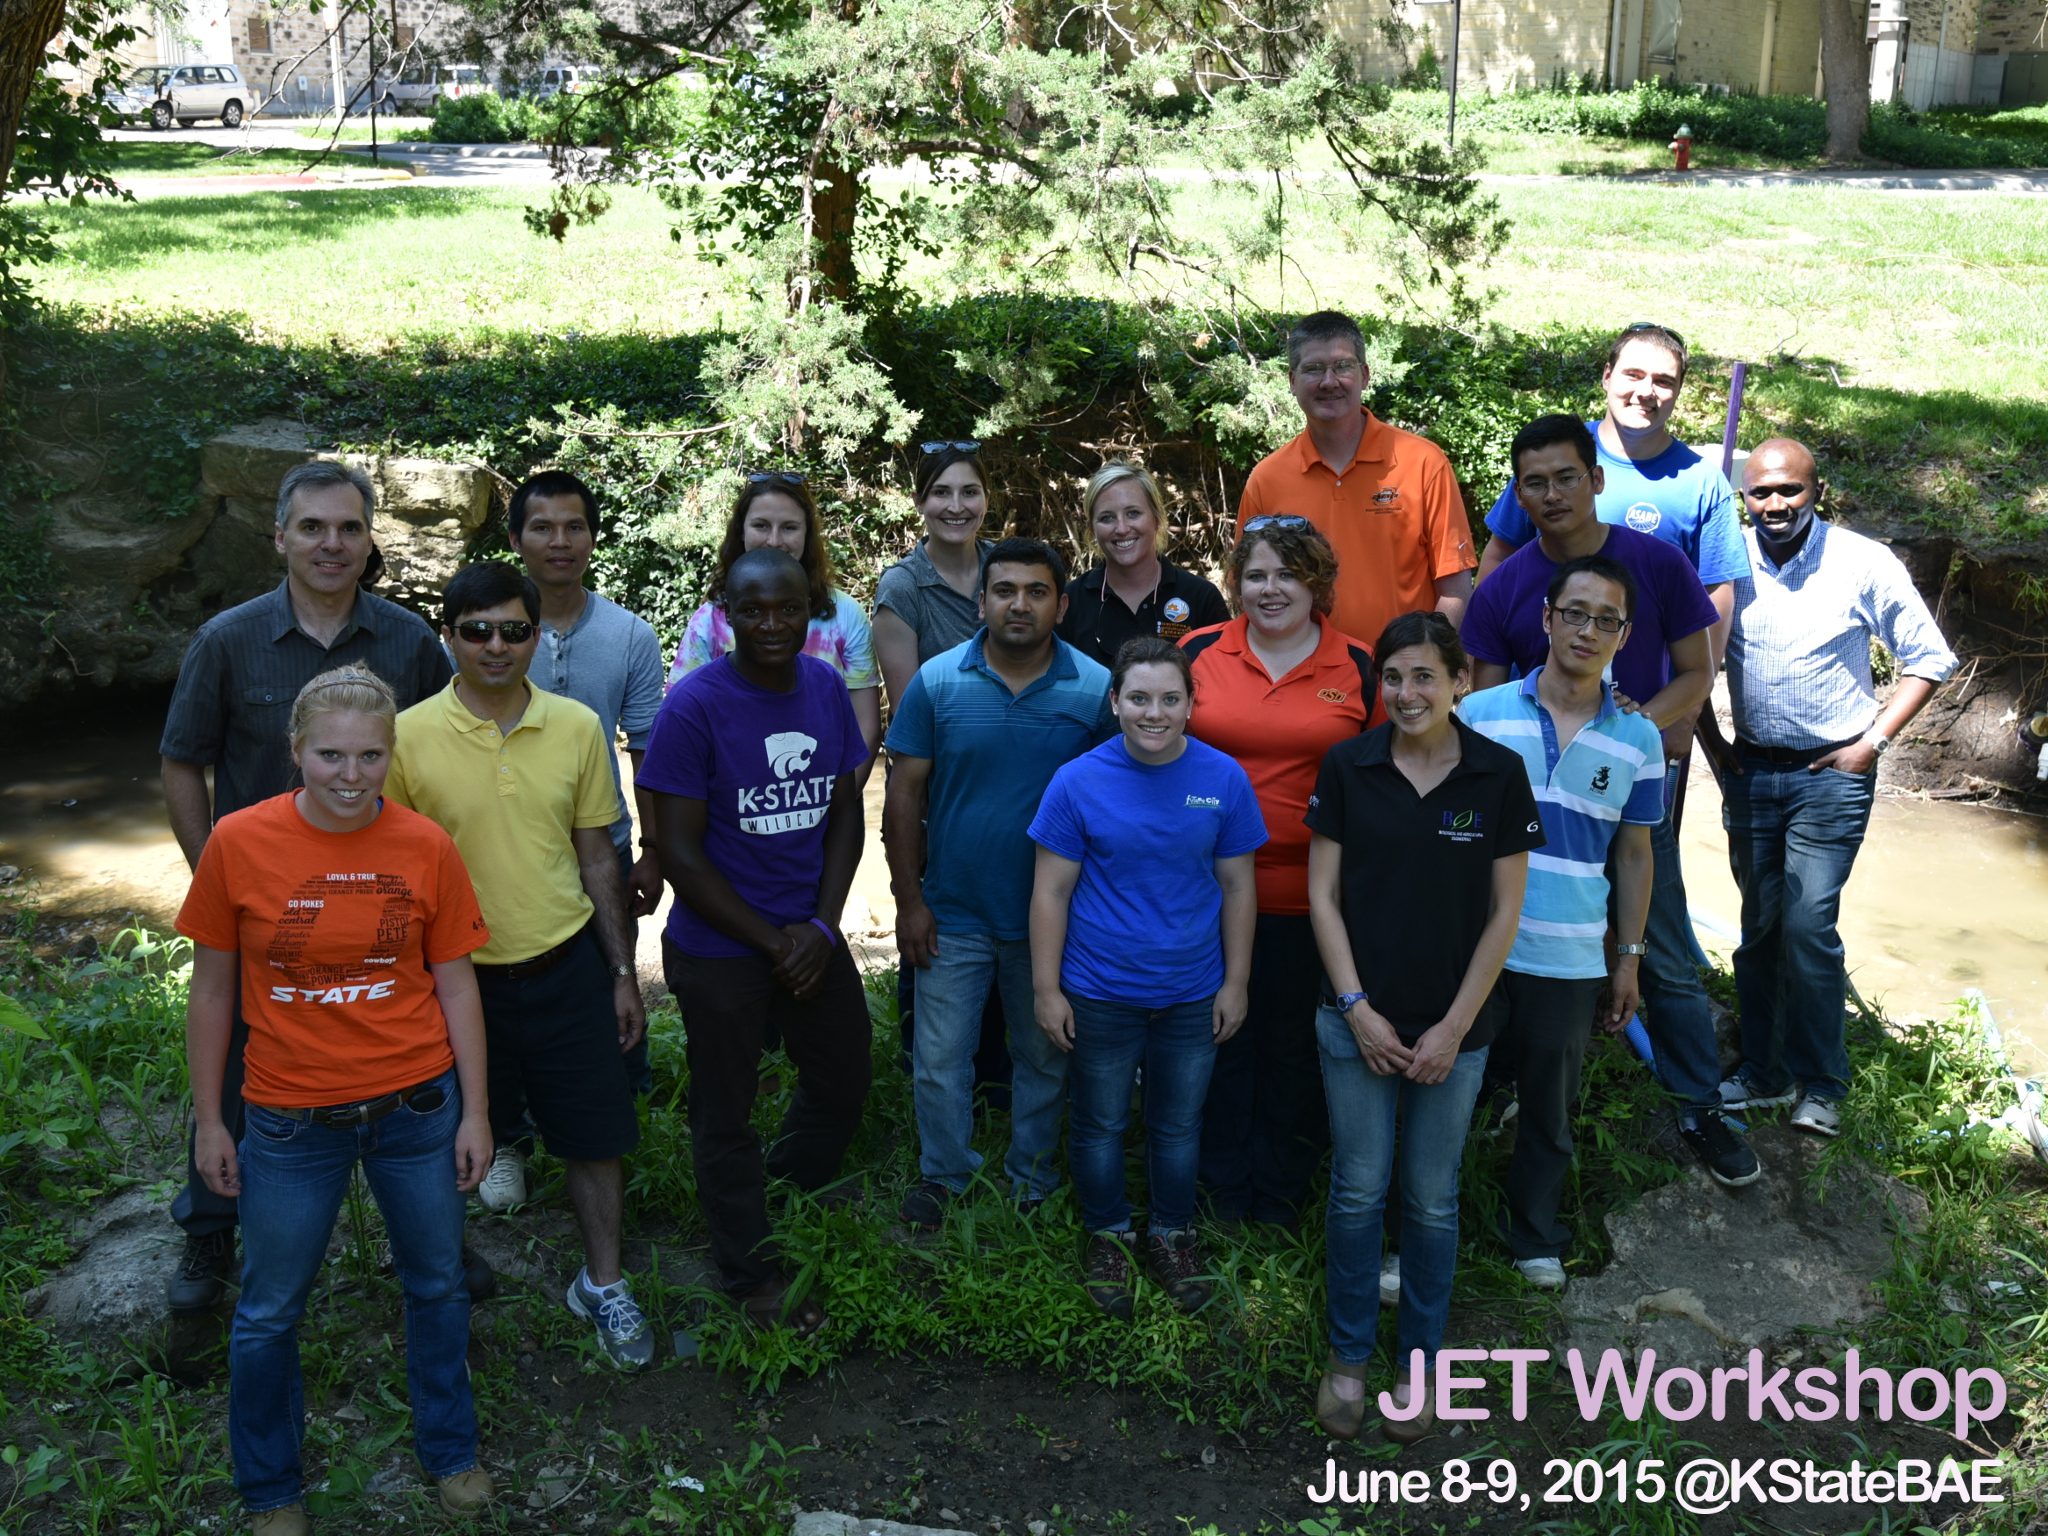 JET group picture